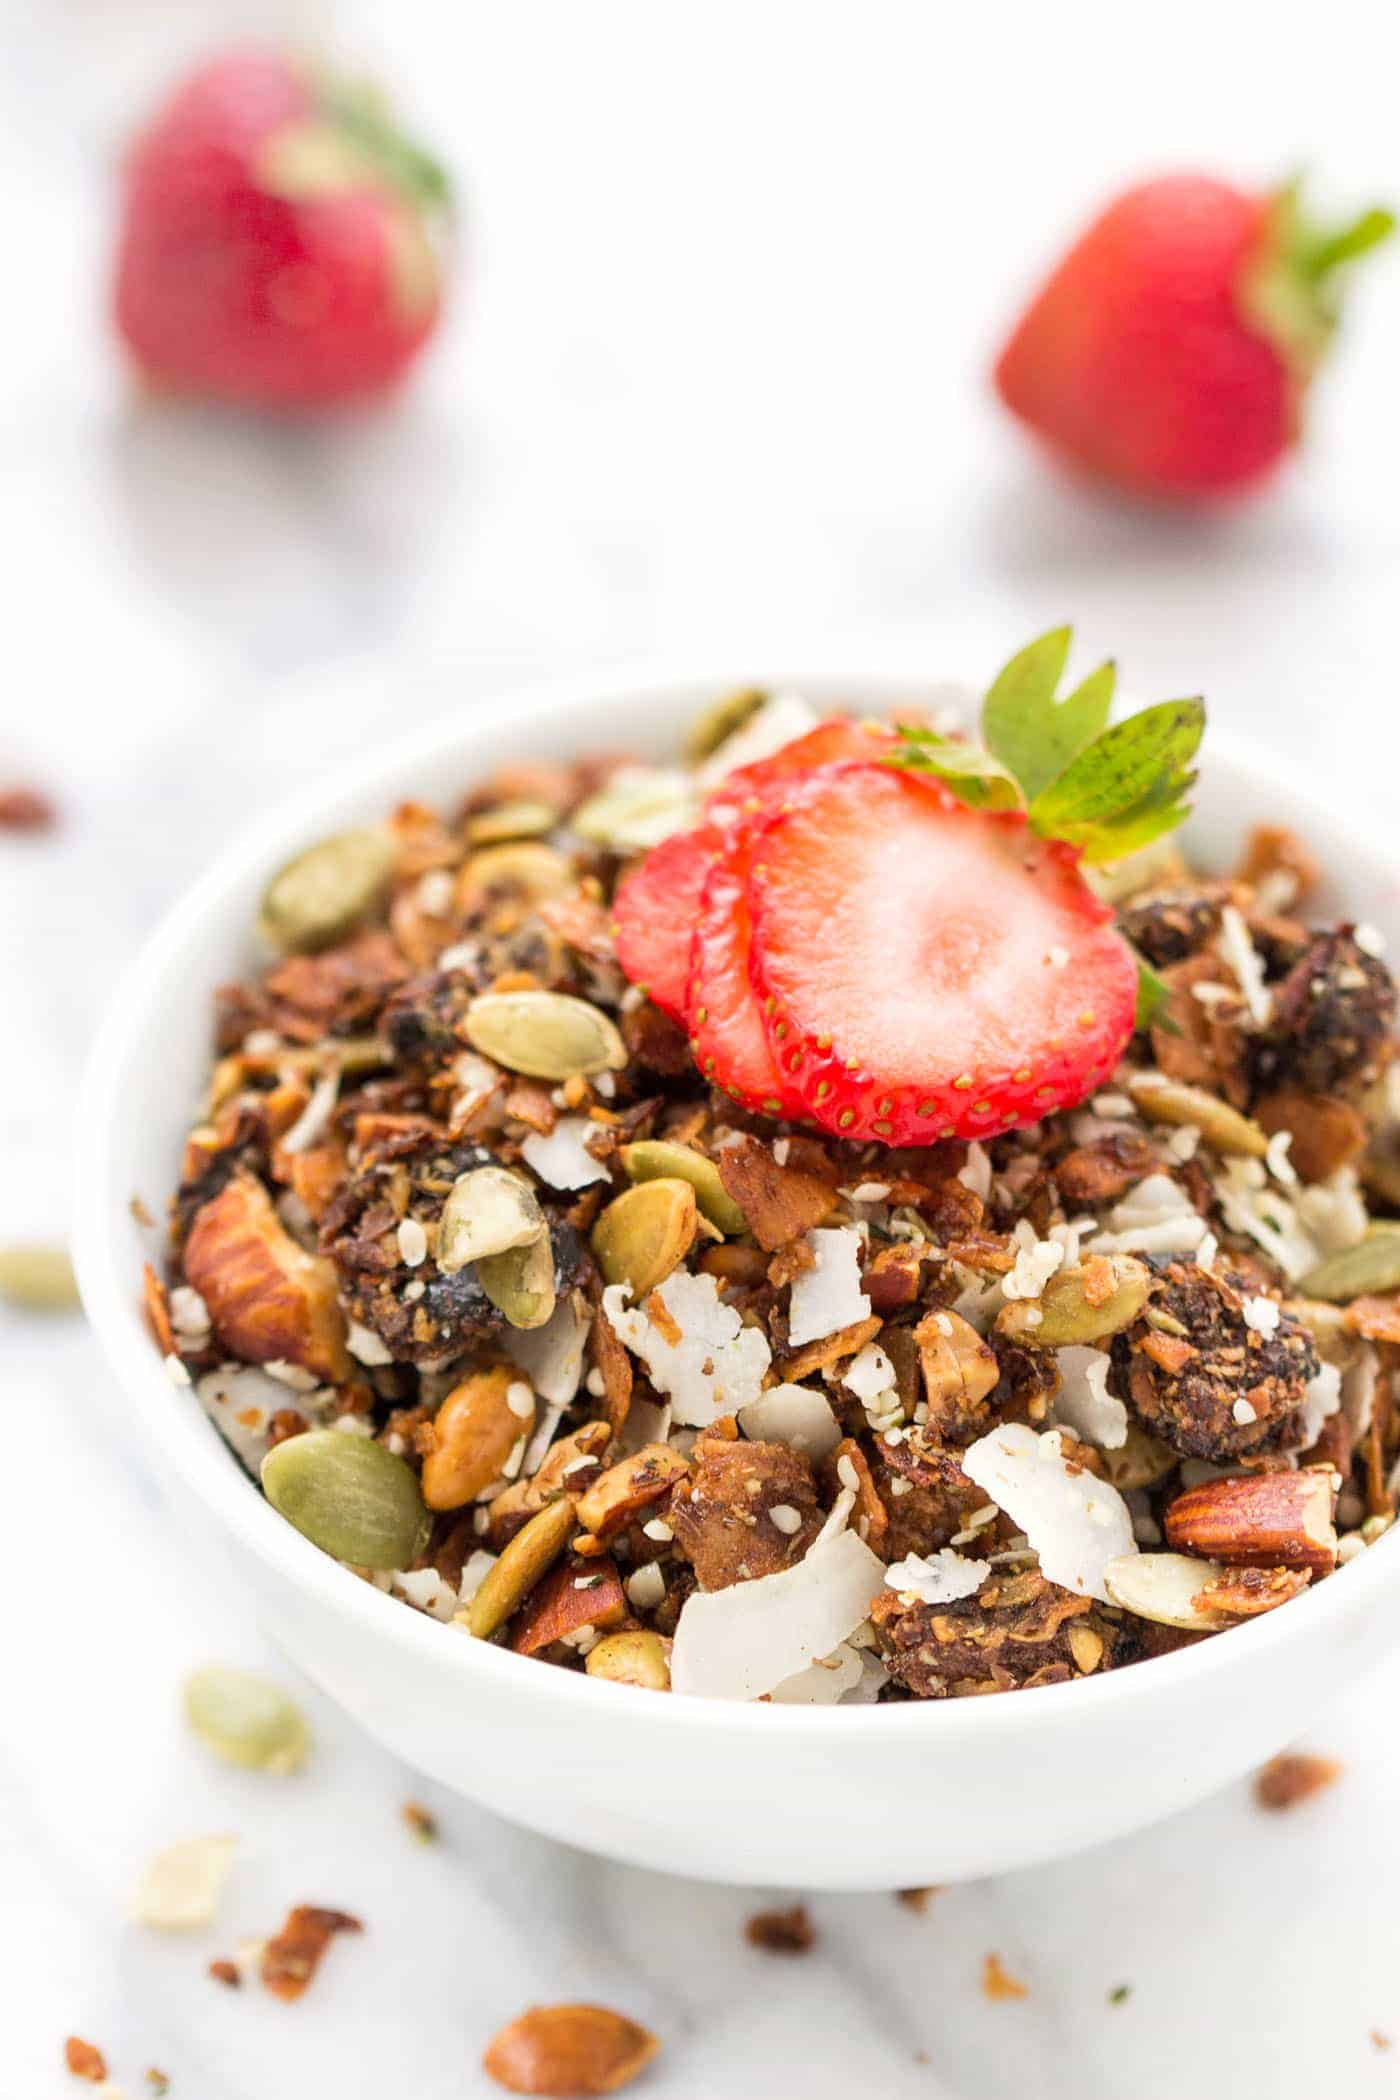 This delicious Coconut Granola is not only vegan, but it's also grain-free AND paleo!